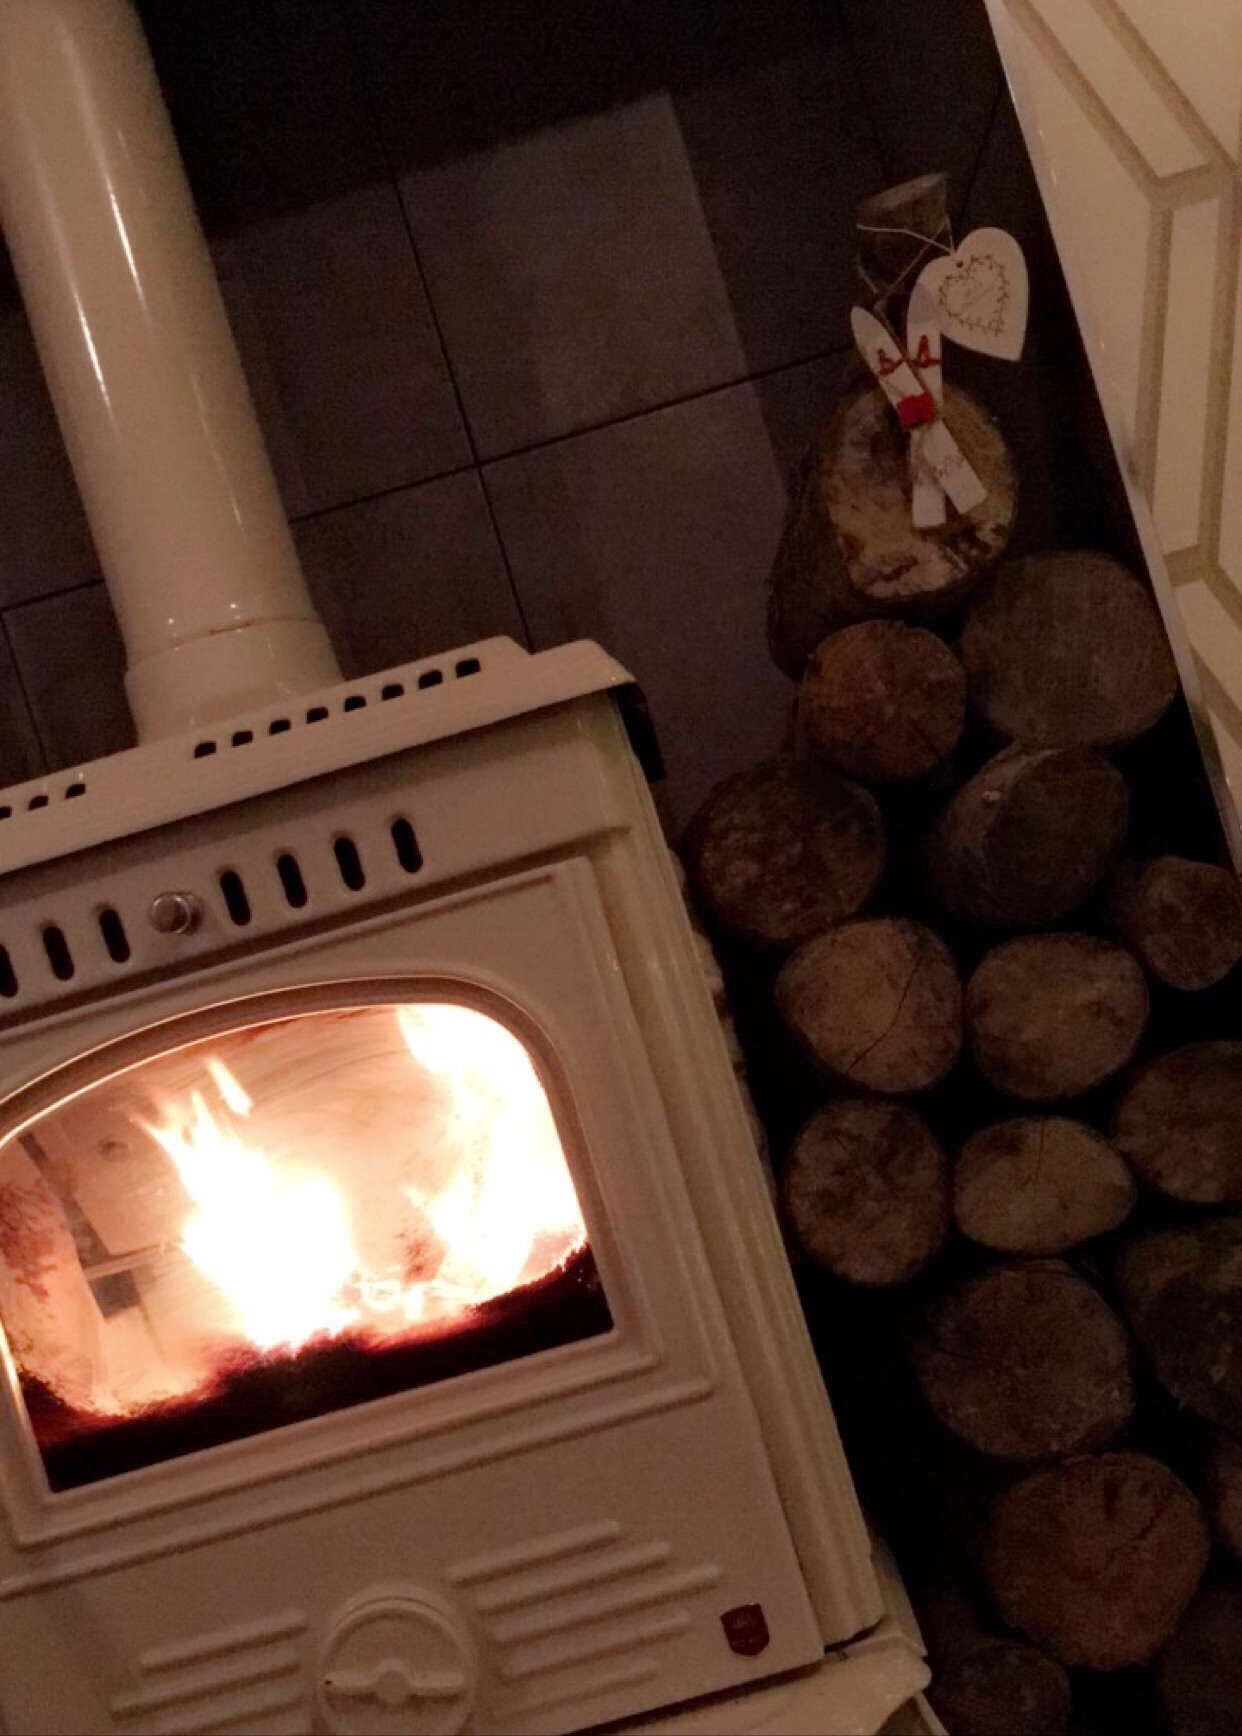 fuel-up-your-fire-hygge-elainesrovesntorves